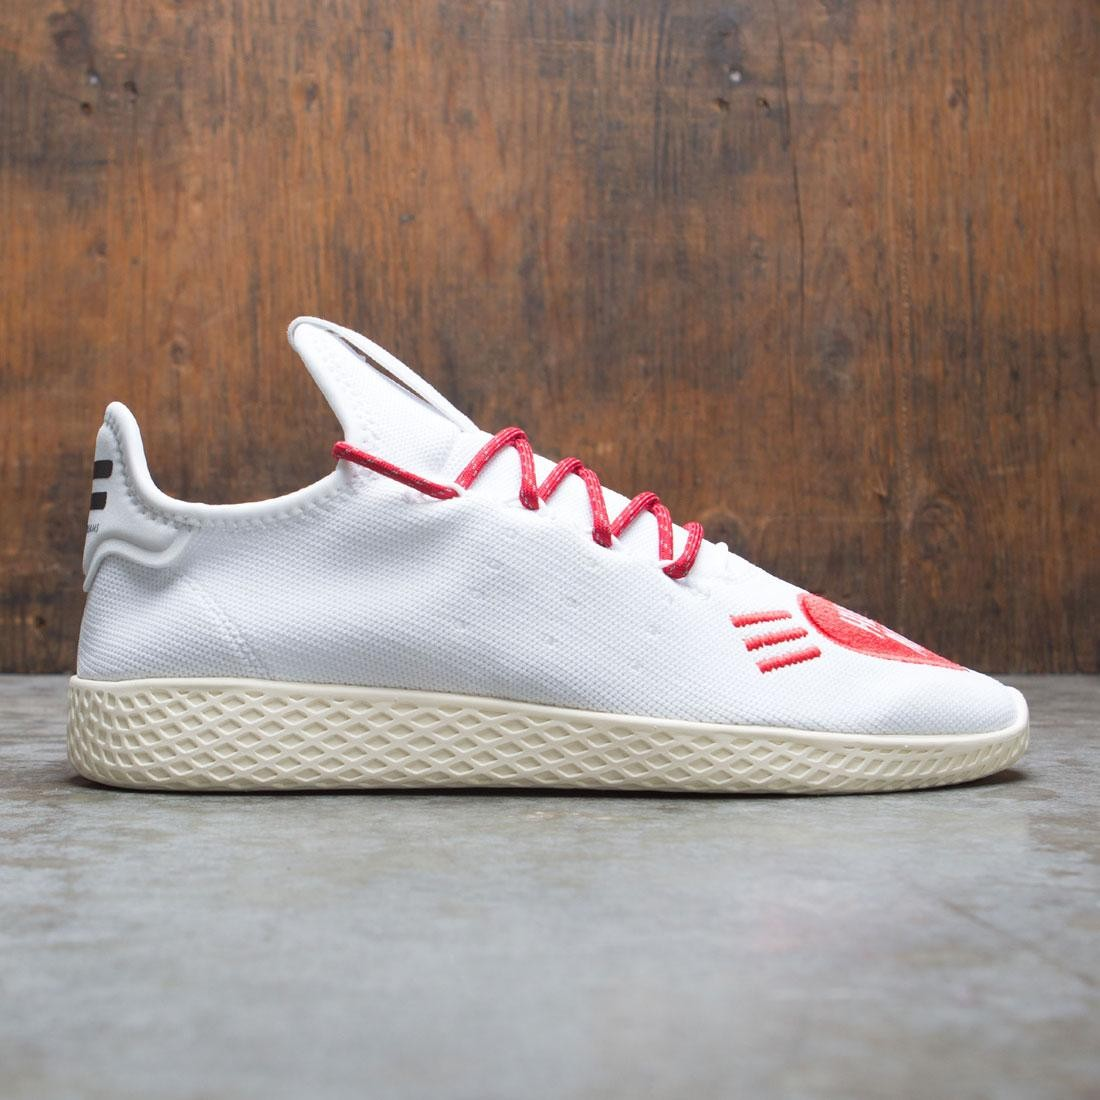 Adidas x Pharrell Williams Men Tennis HU Human Made white